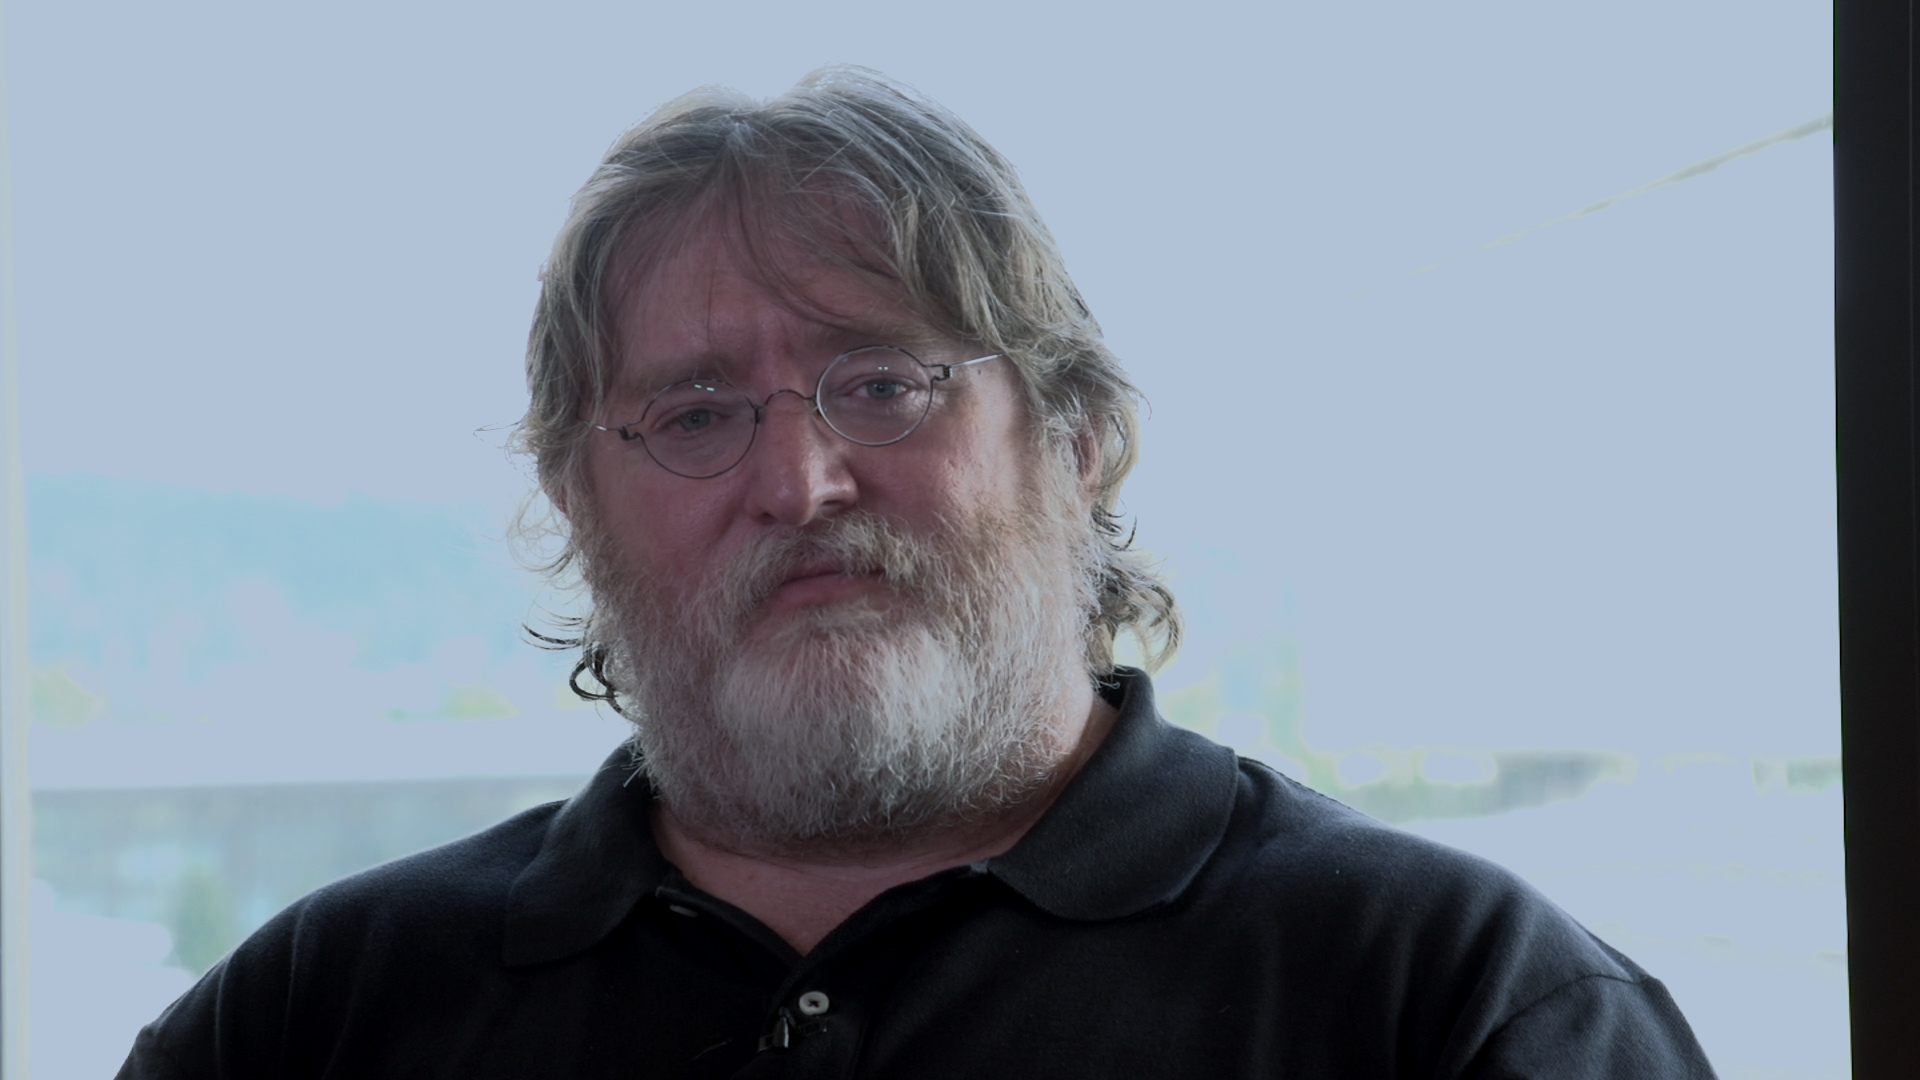 Nice wallpapers Gabe Newell 1920x1080px